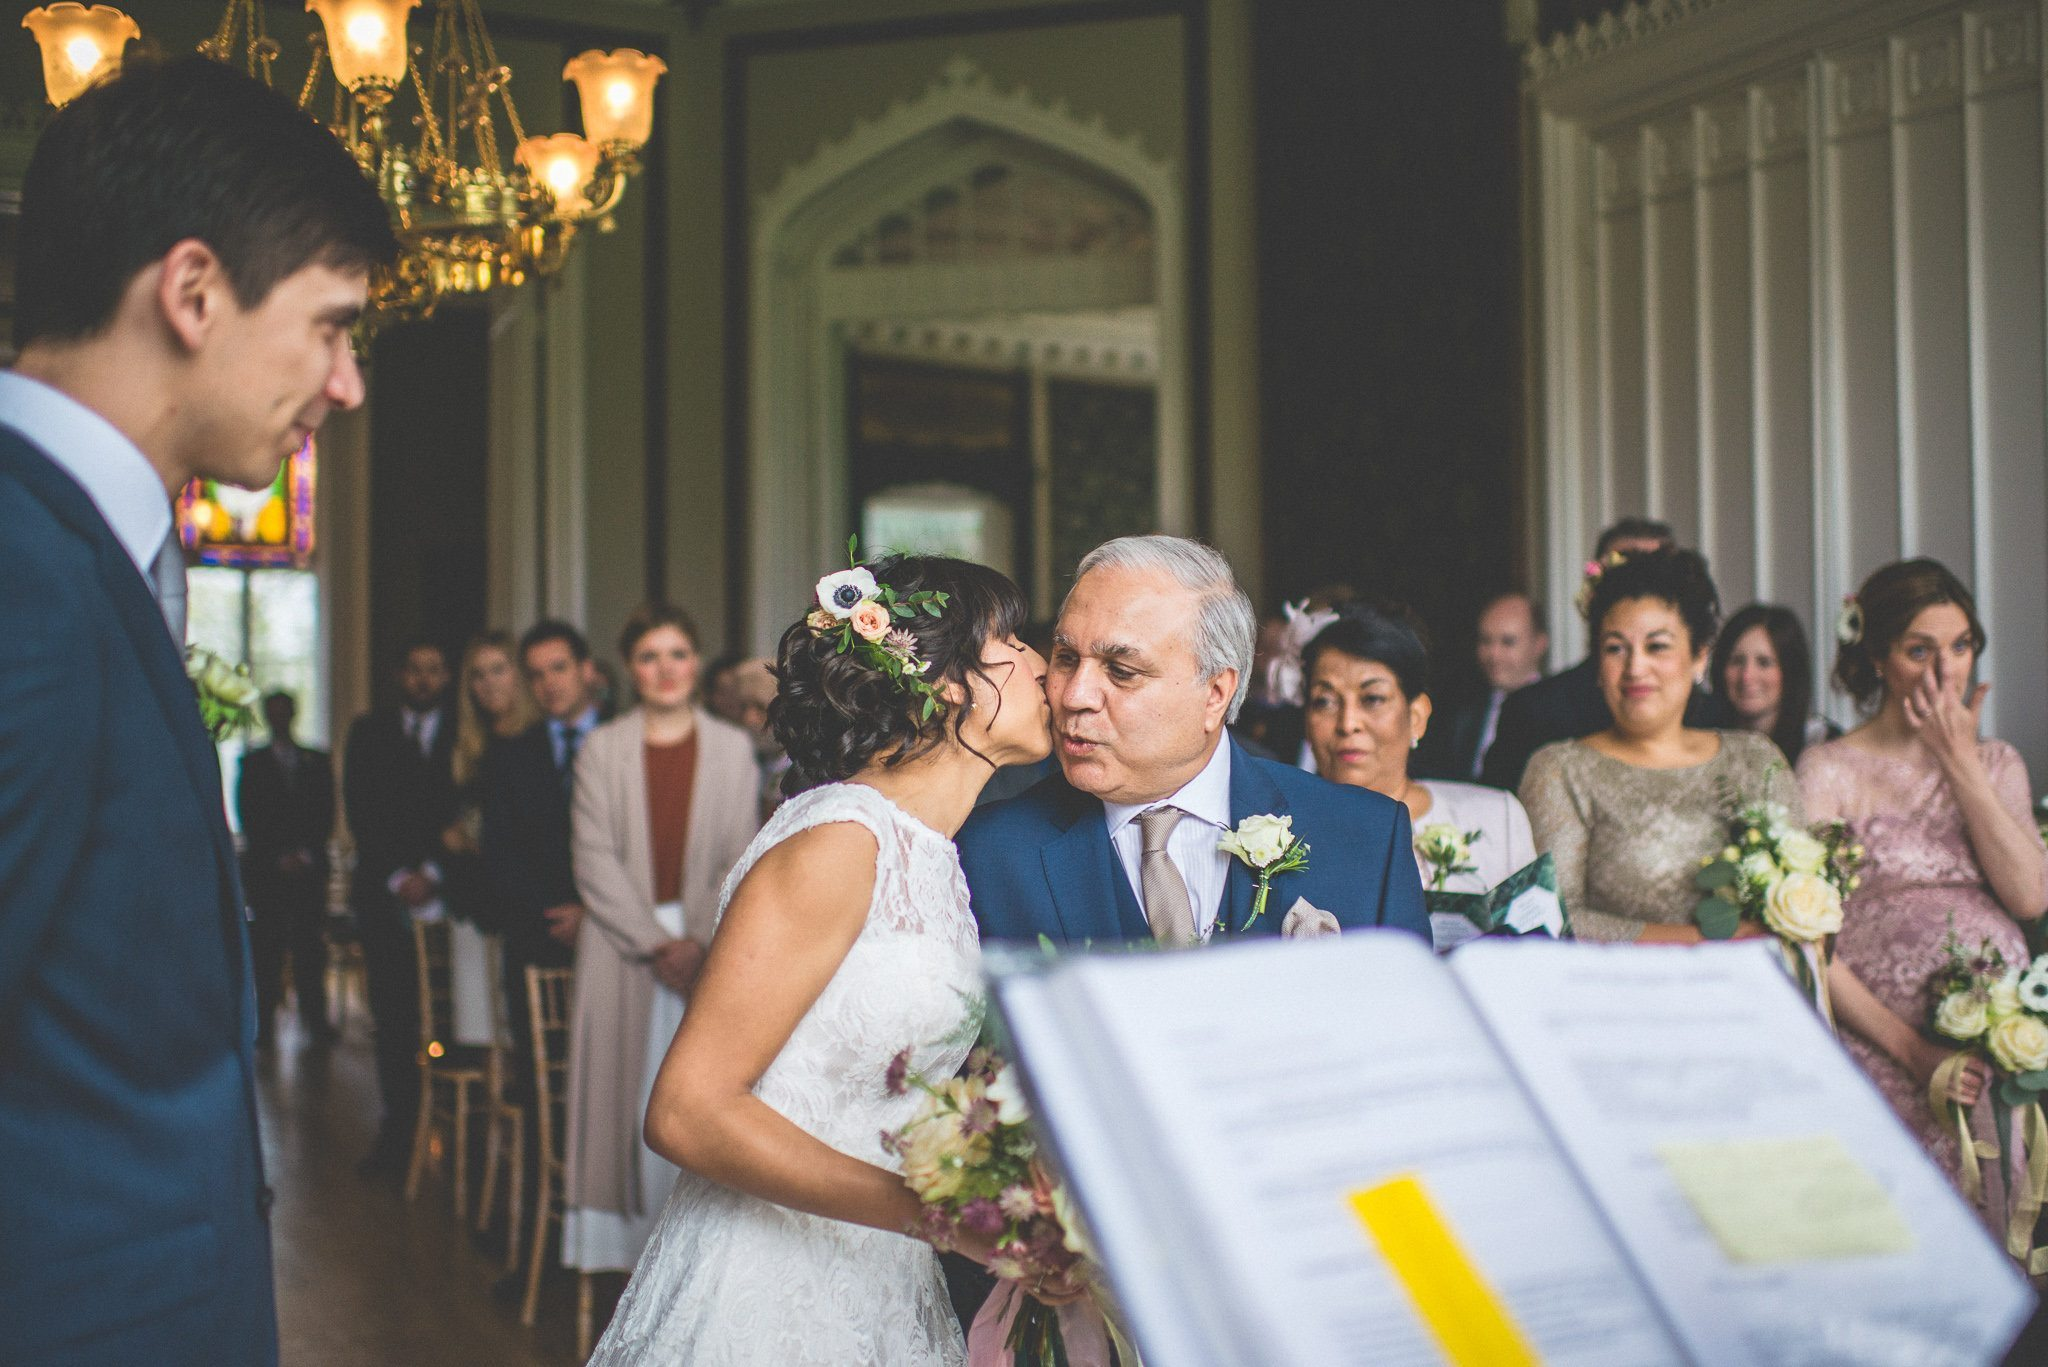 Jasmin kisses her father on the cheek as her groom looks on